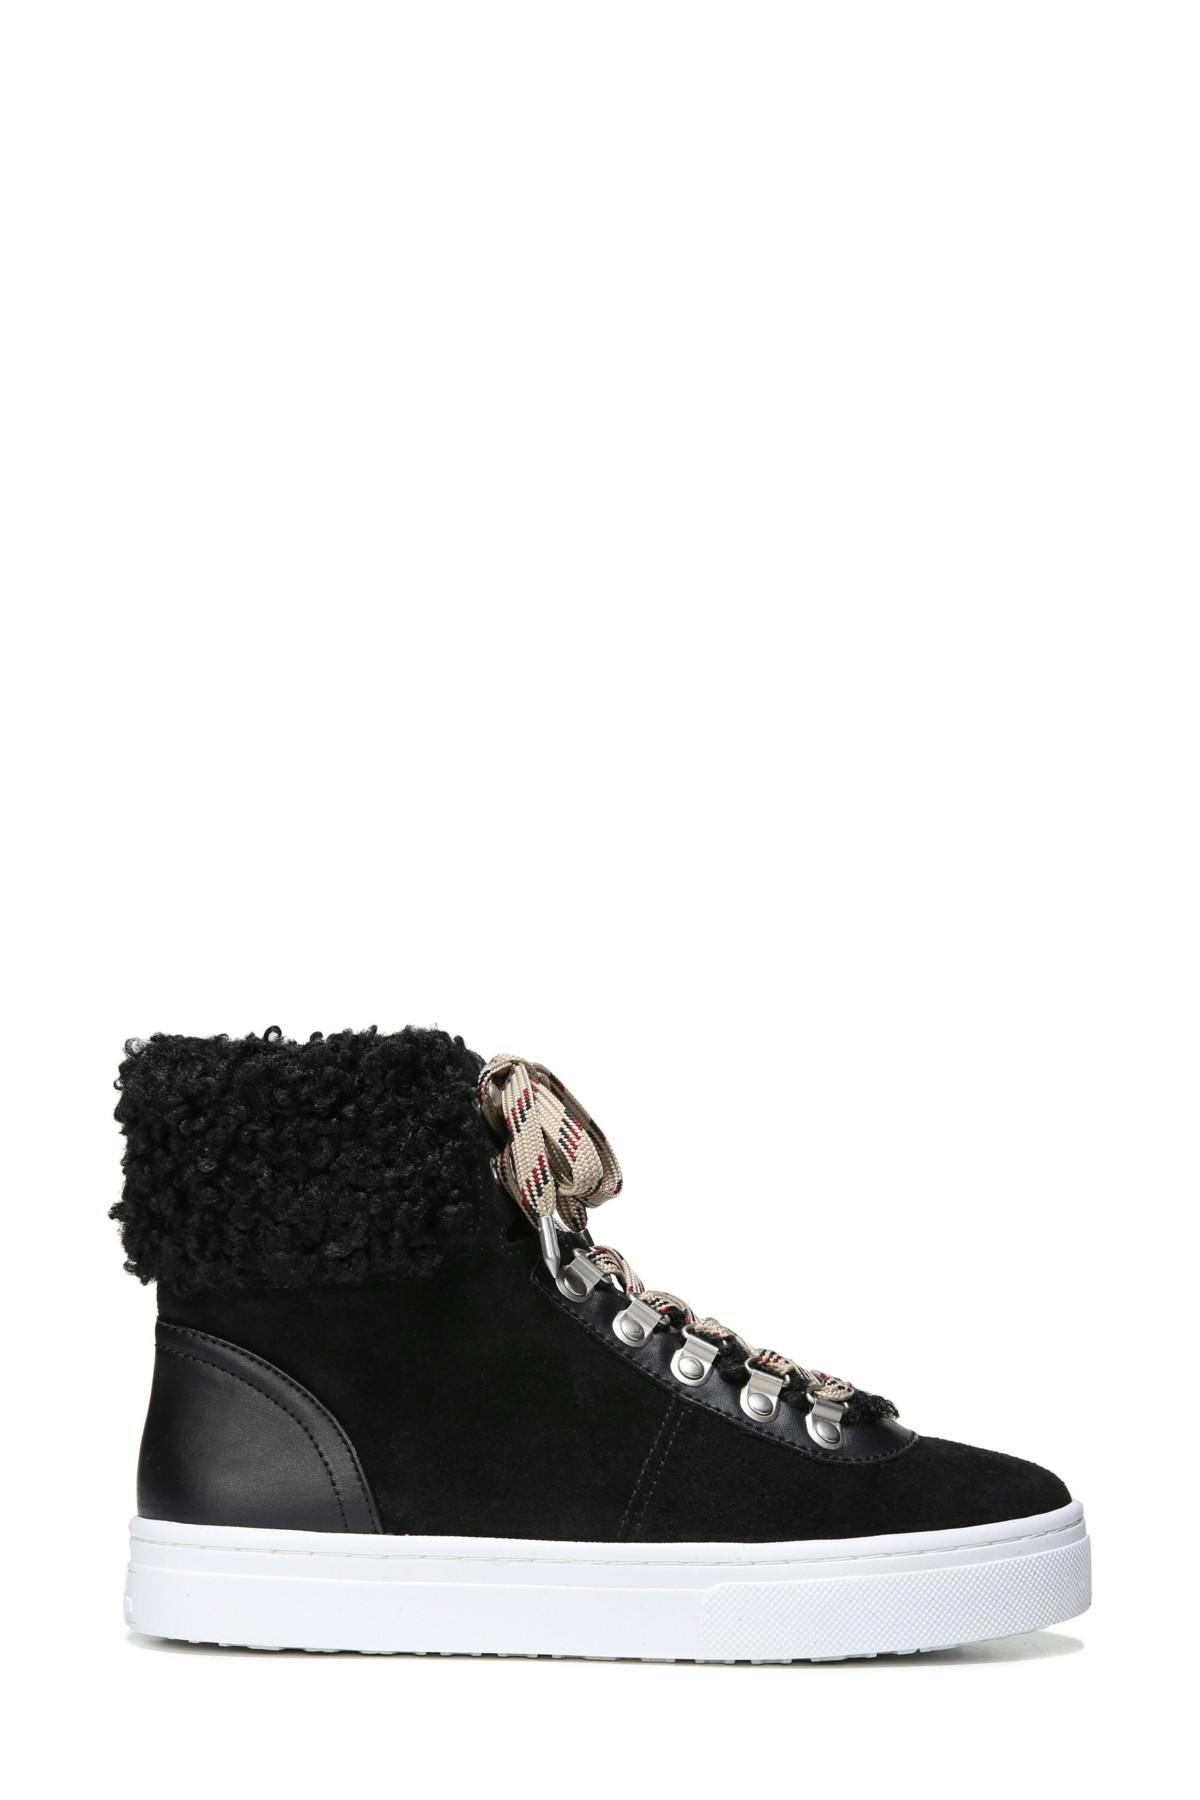 6fc504d96765 Lyst - Sam Edelman Luther Faux Shearling High Top Sneaker in Black